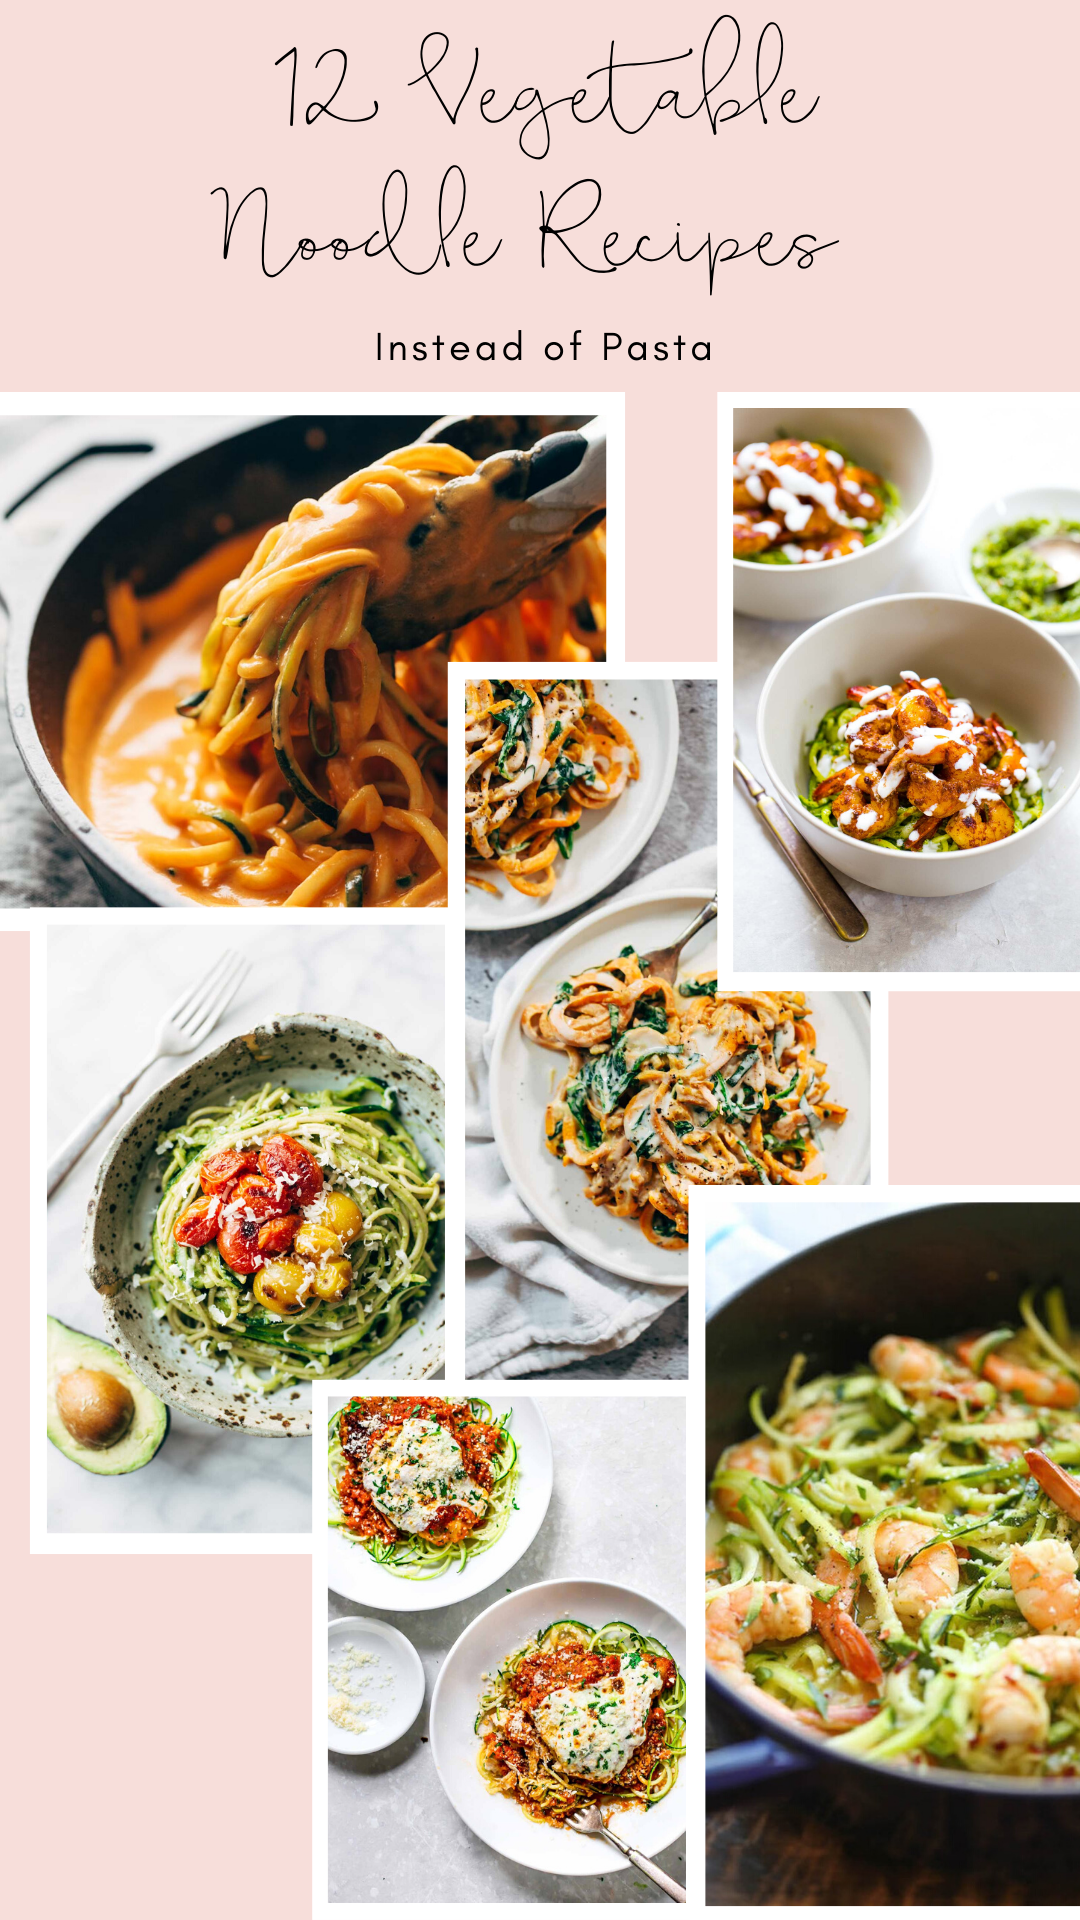 Want to make a healthier switch at lunch or dinner time? Here are 12 amazing recipes using vegetable noodles, when what you really want is pasta!   glitterinc.com   @glitterinc